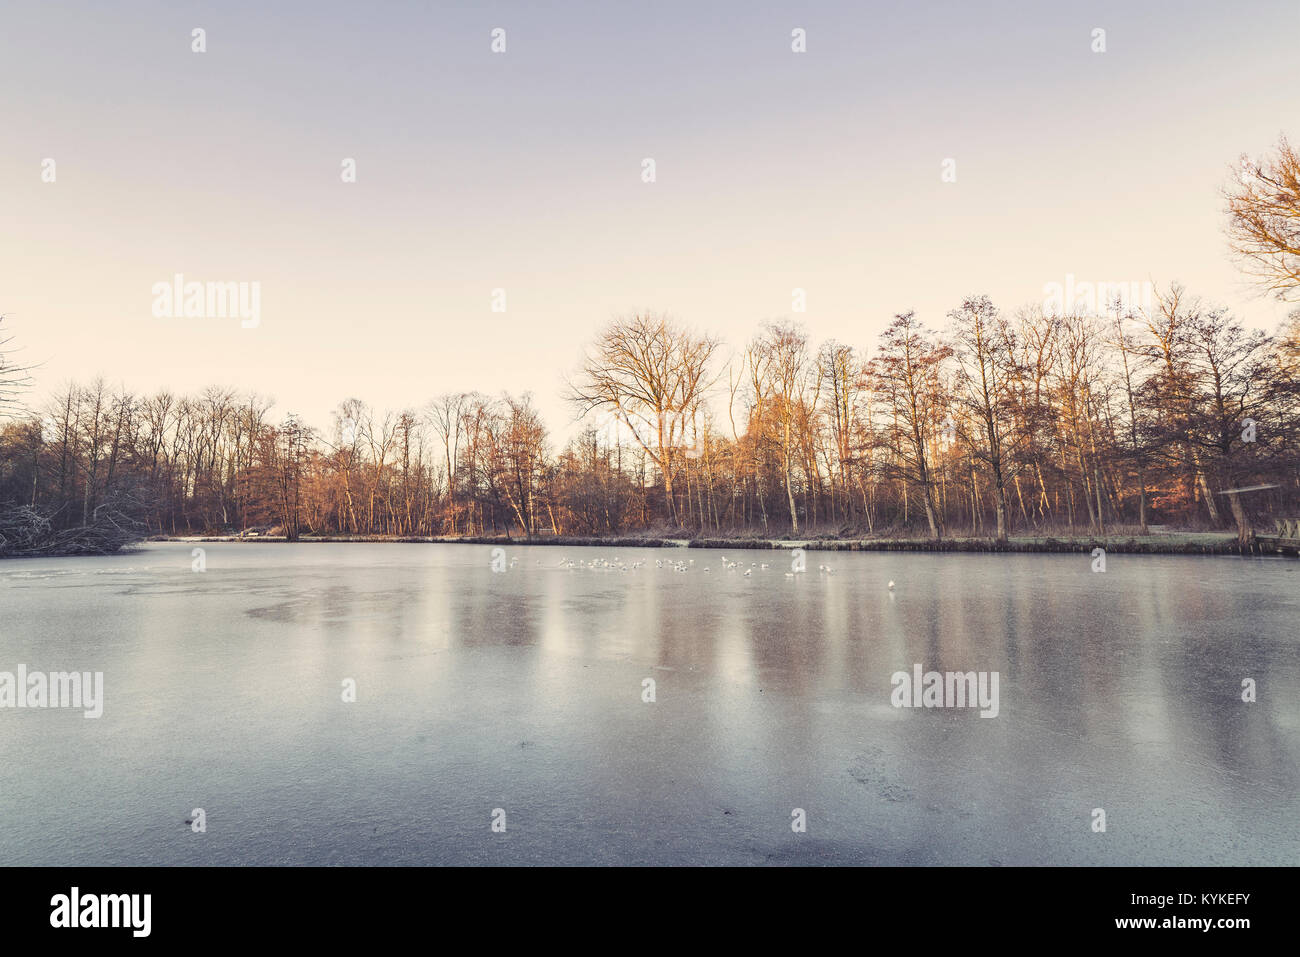 Trees around a frozen lake in the winter with birds looking for food in the morning - Stock Image